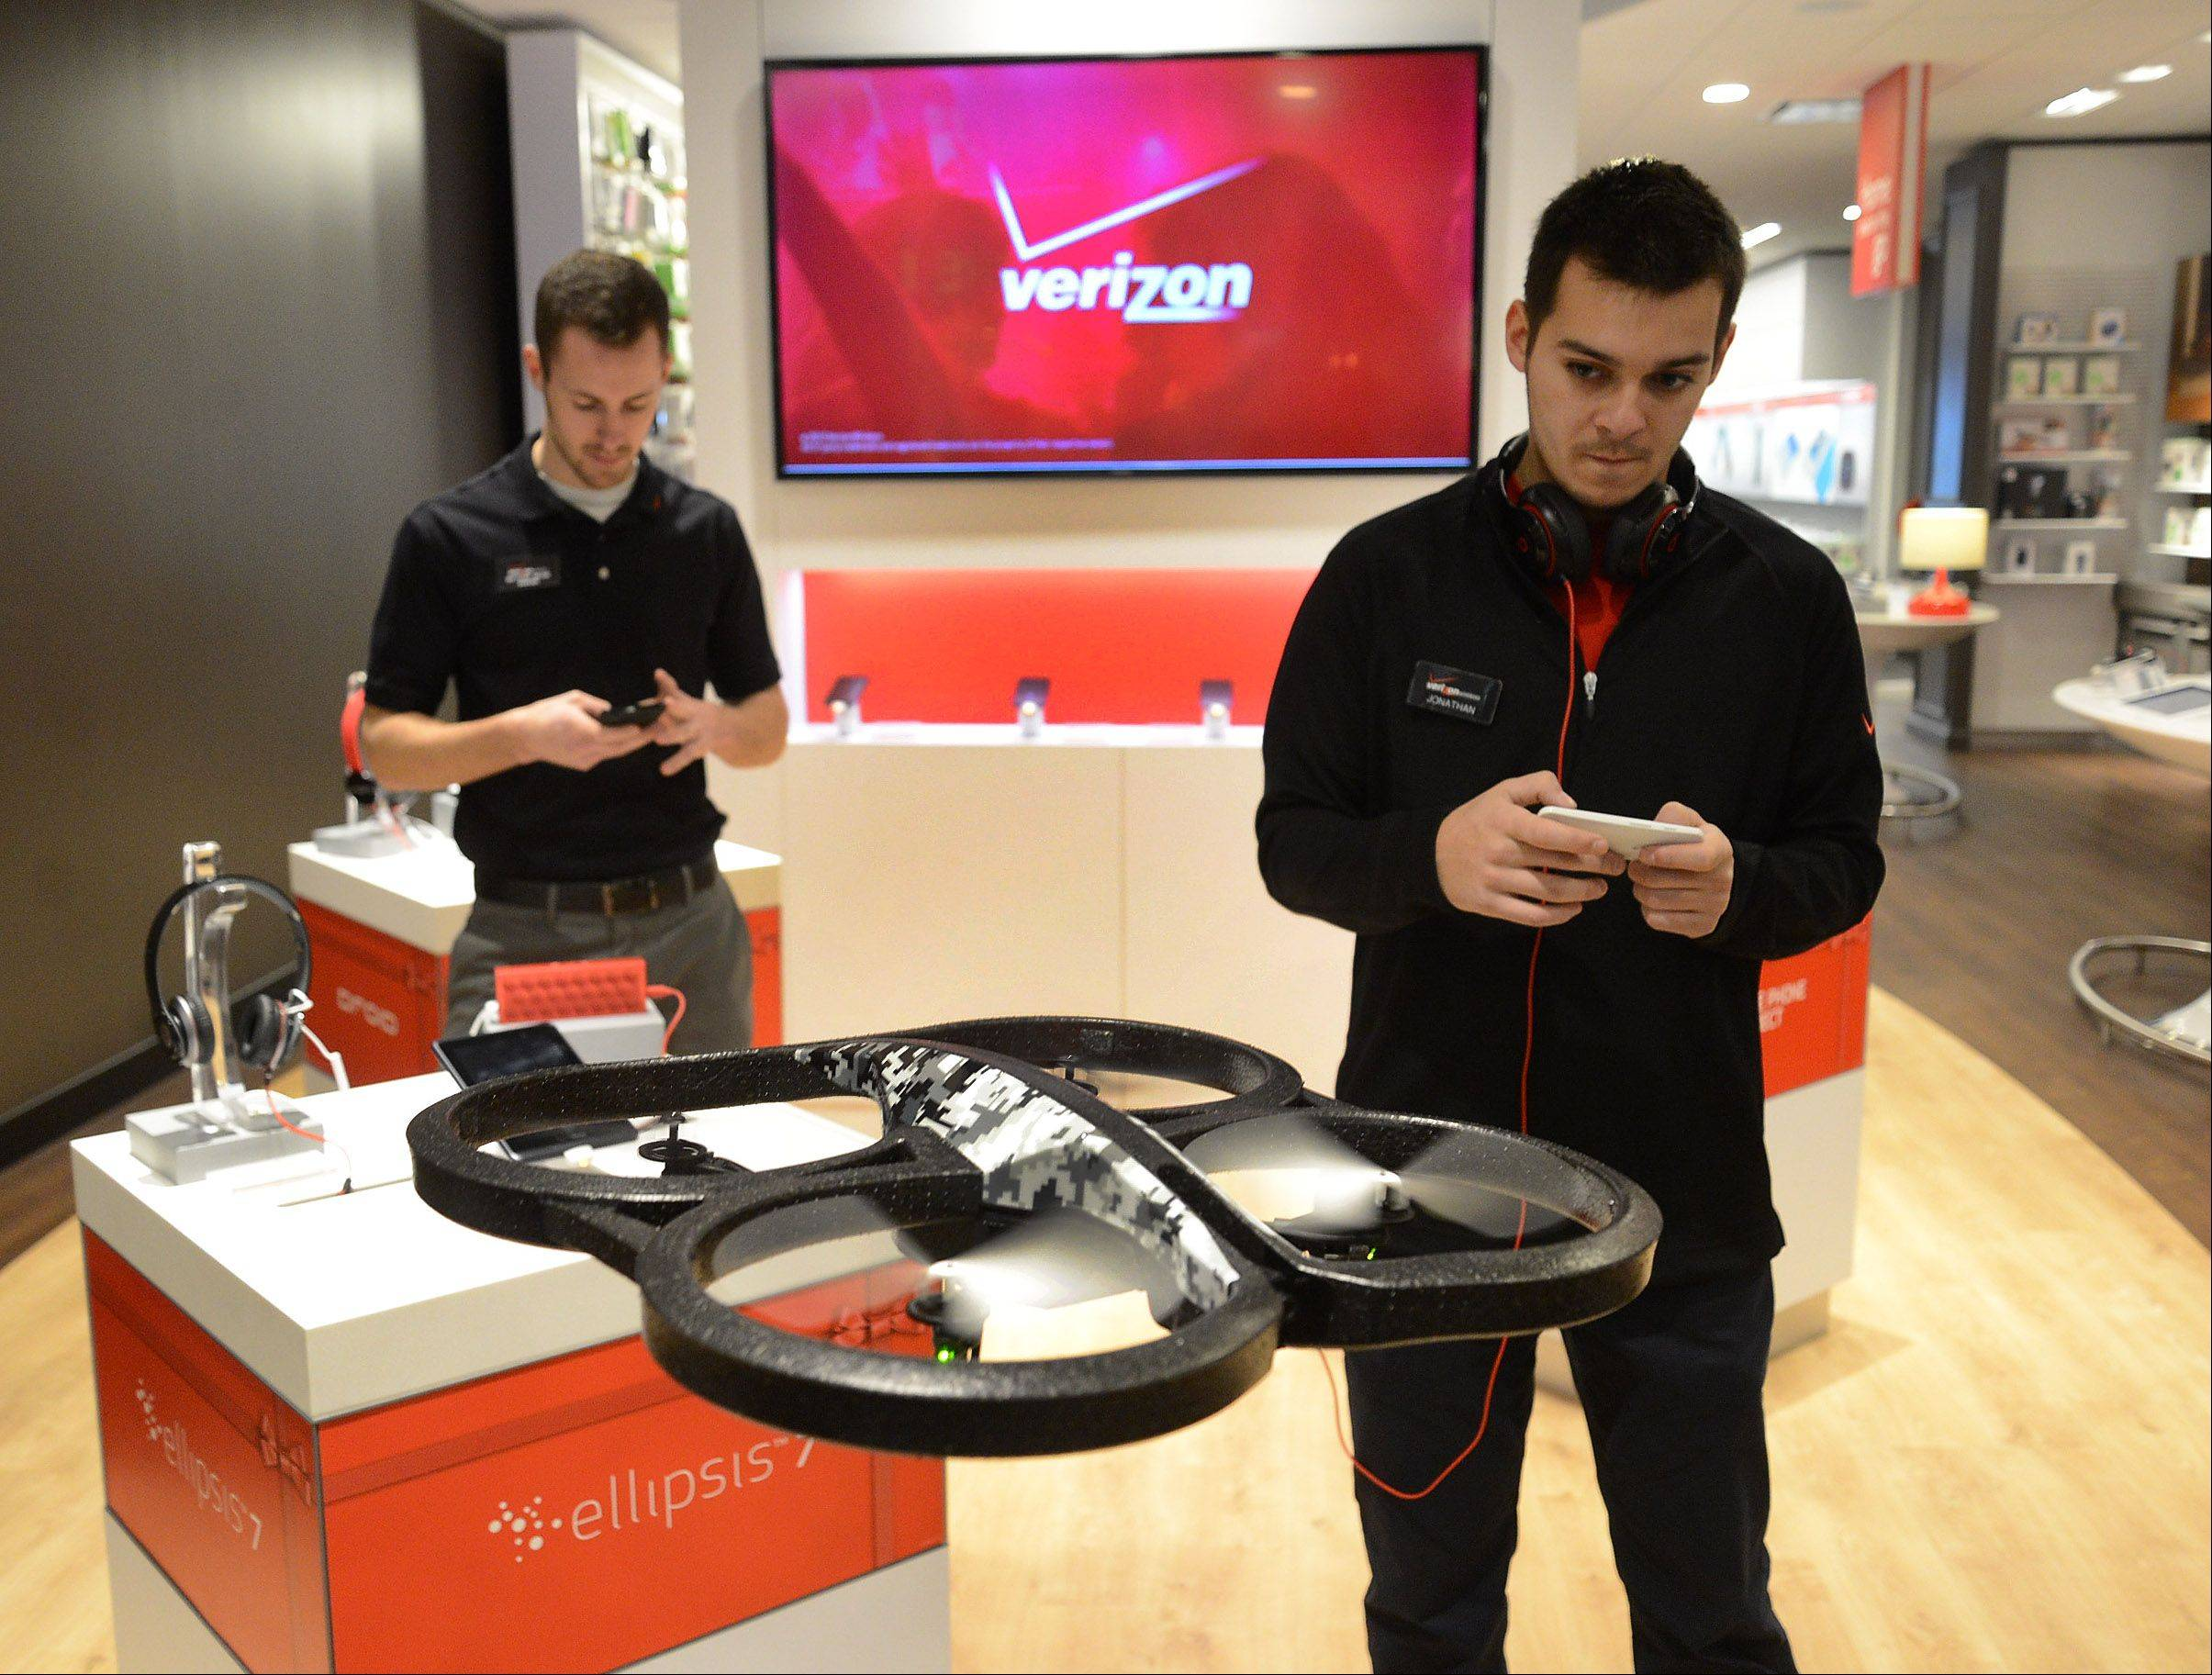 Solution Specialist Jonathan Deassis demonstrates an AR Drone, which records video and takes pictures while controlled by remote control from a cellphone, at Verizon Wireless' new Smart Store in Woodfield Mall.